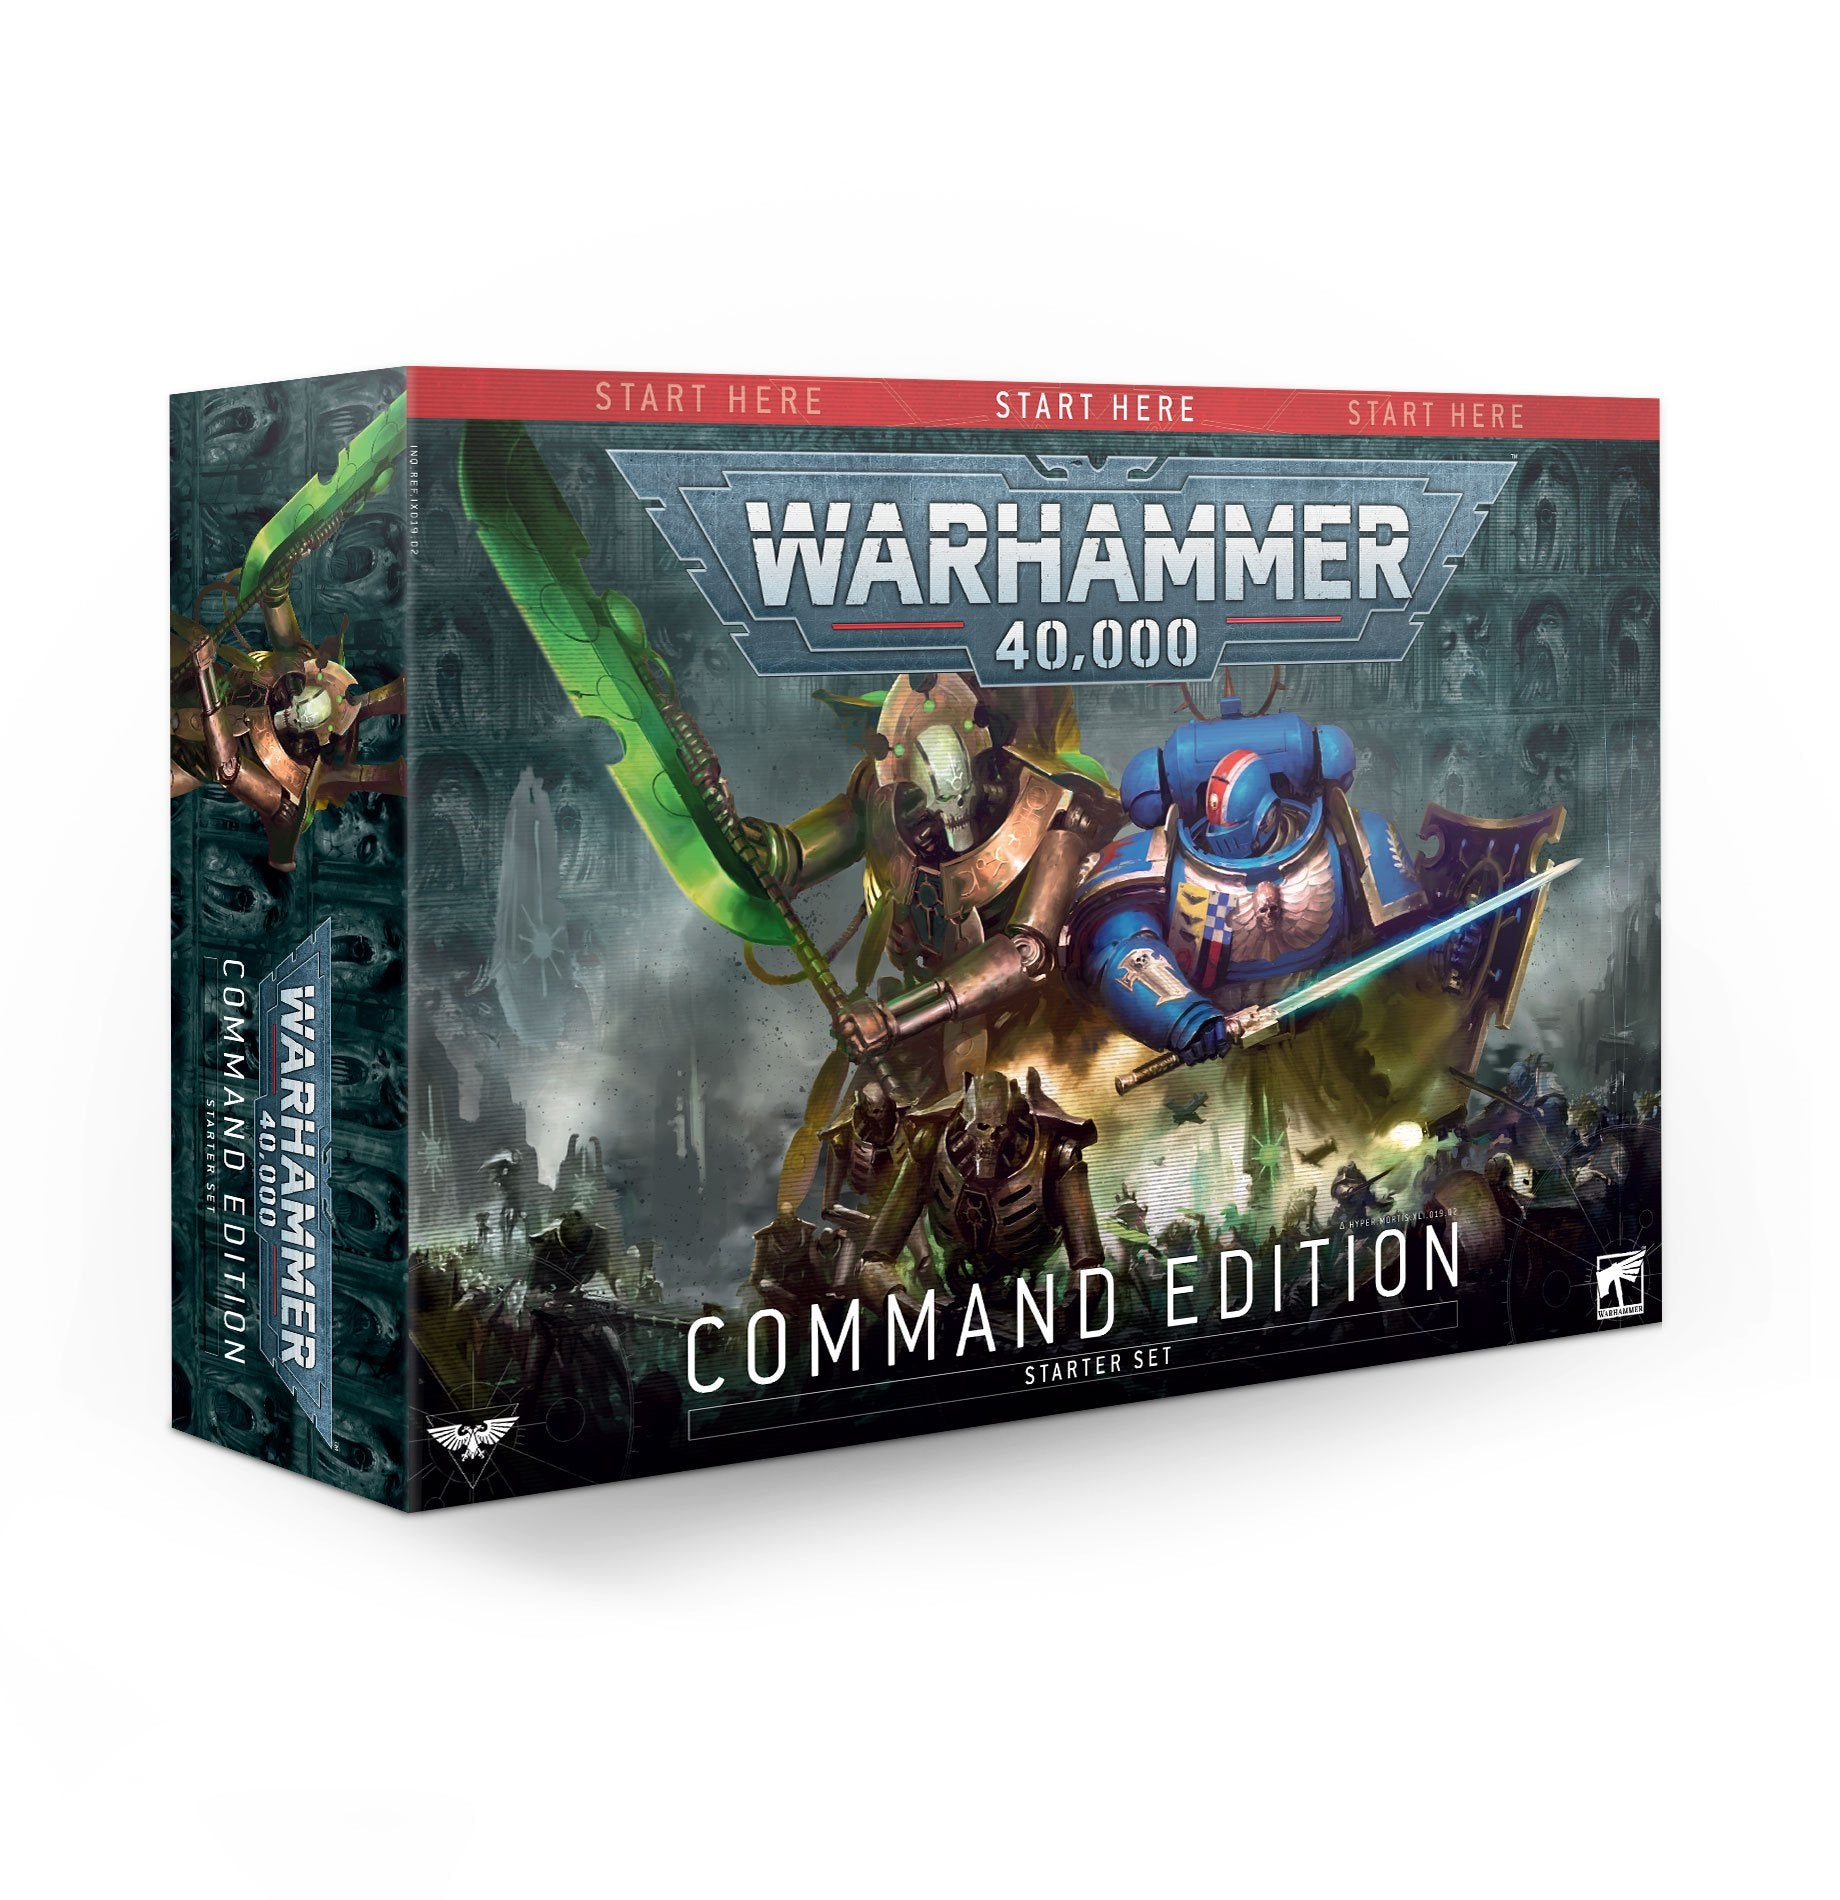 Warhammer 40,000 Command Edition | Games Portal